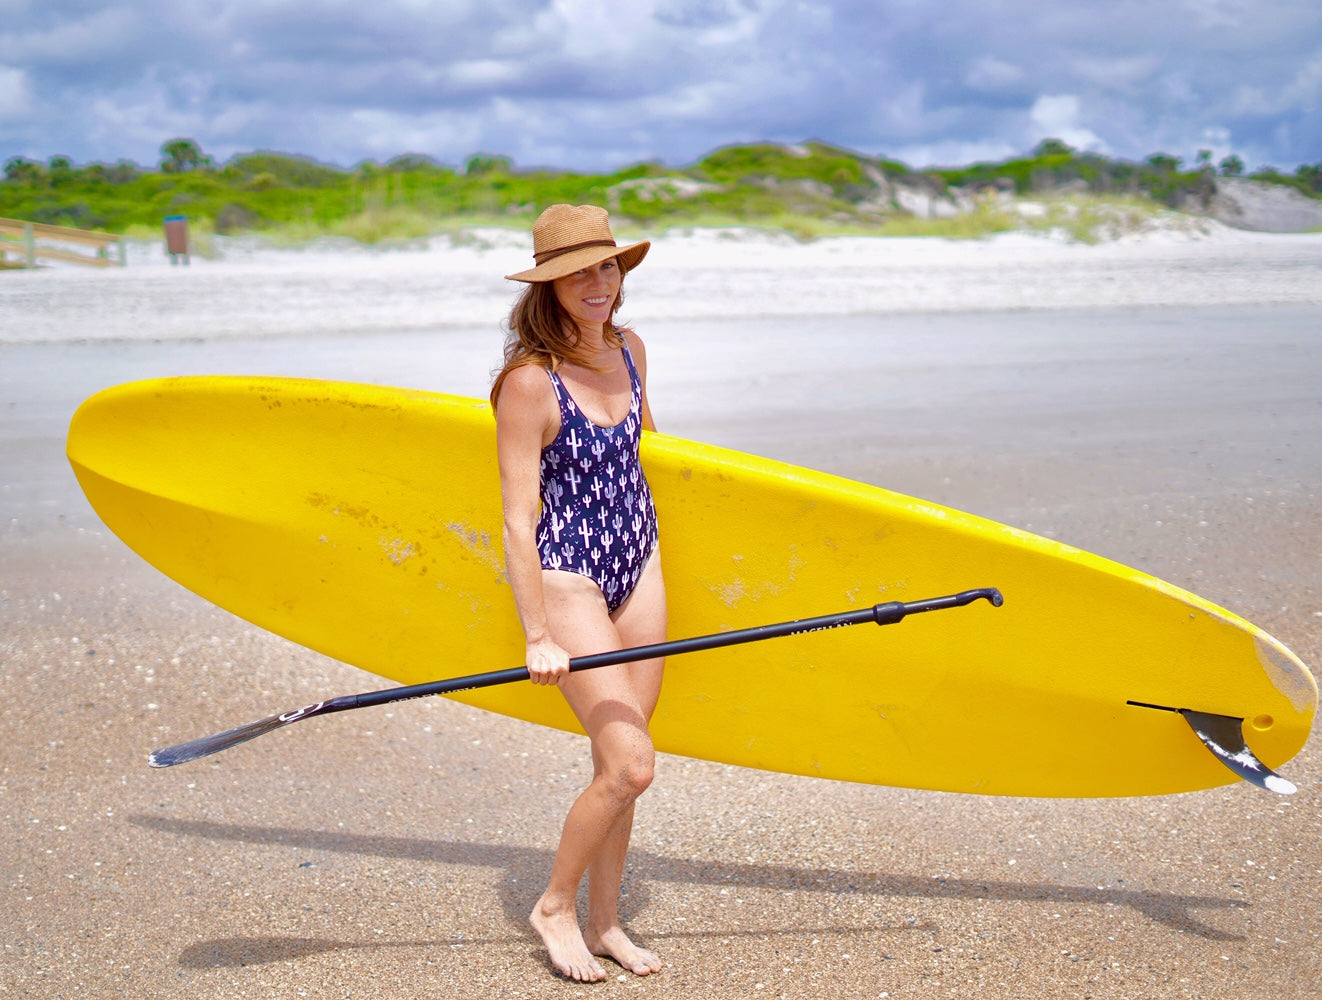 How to carry your sup